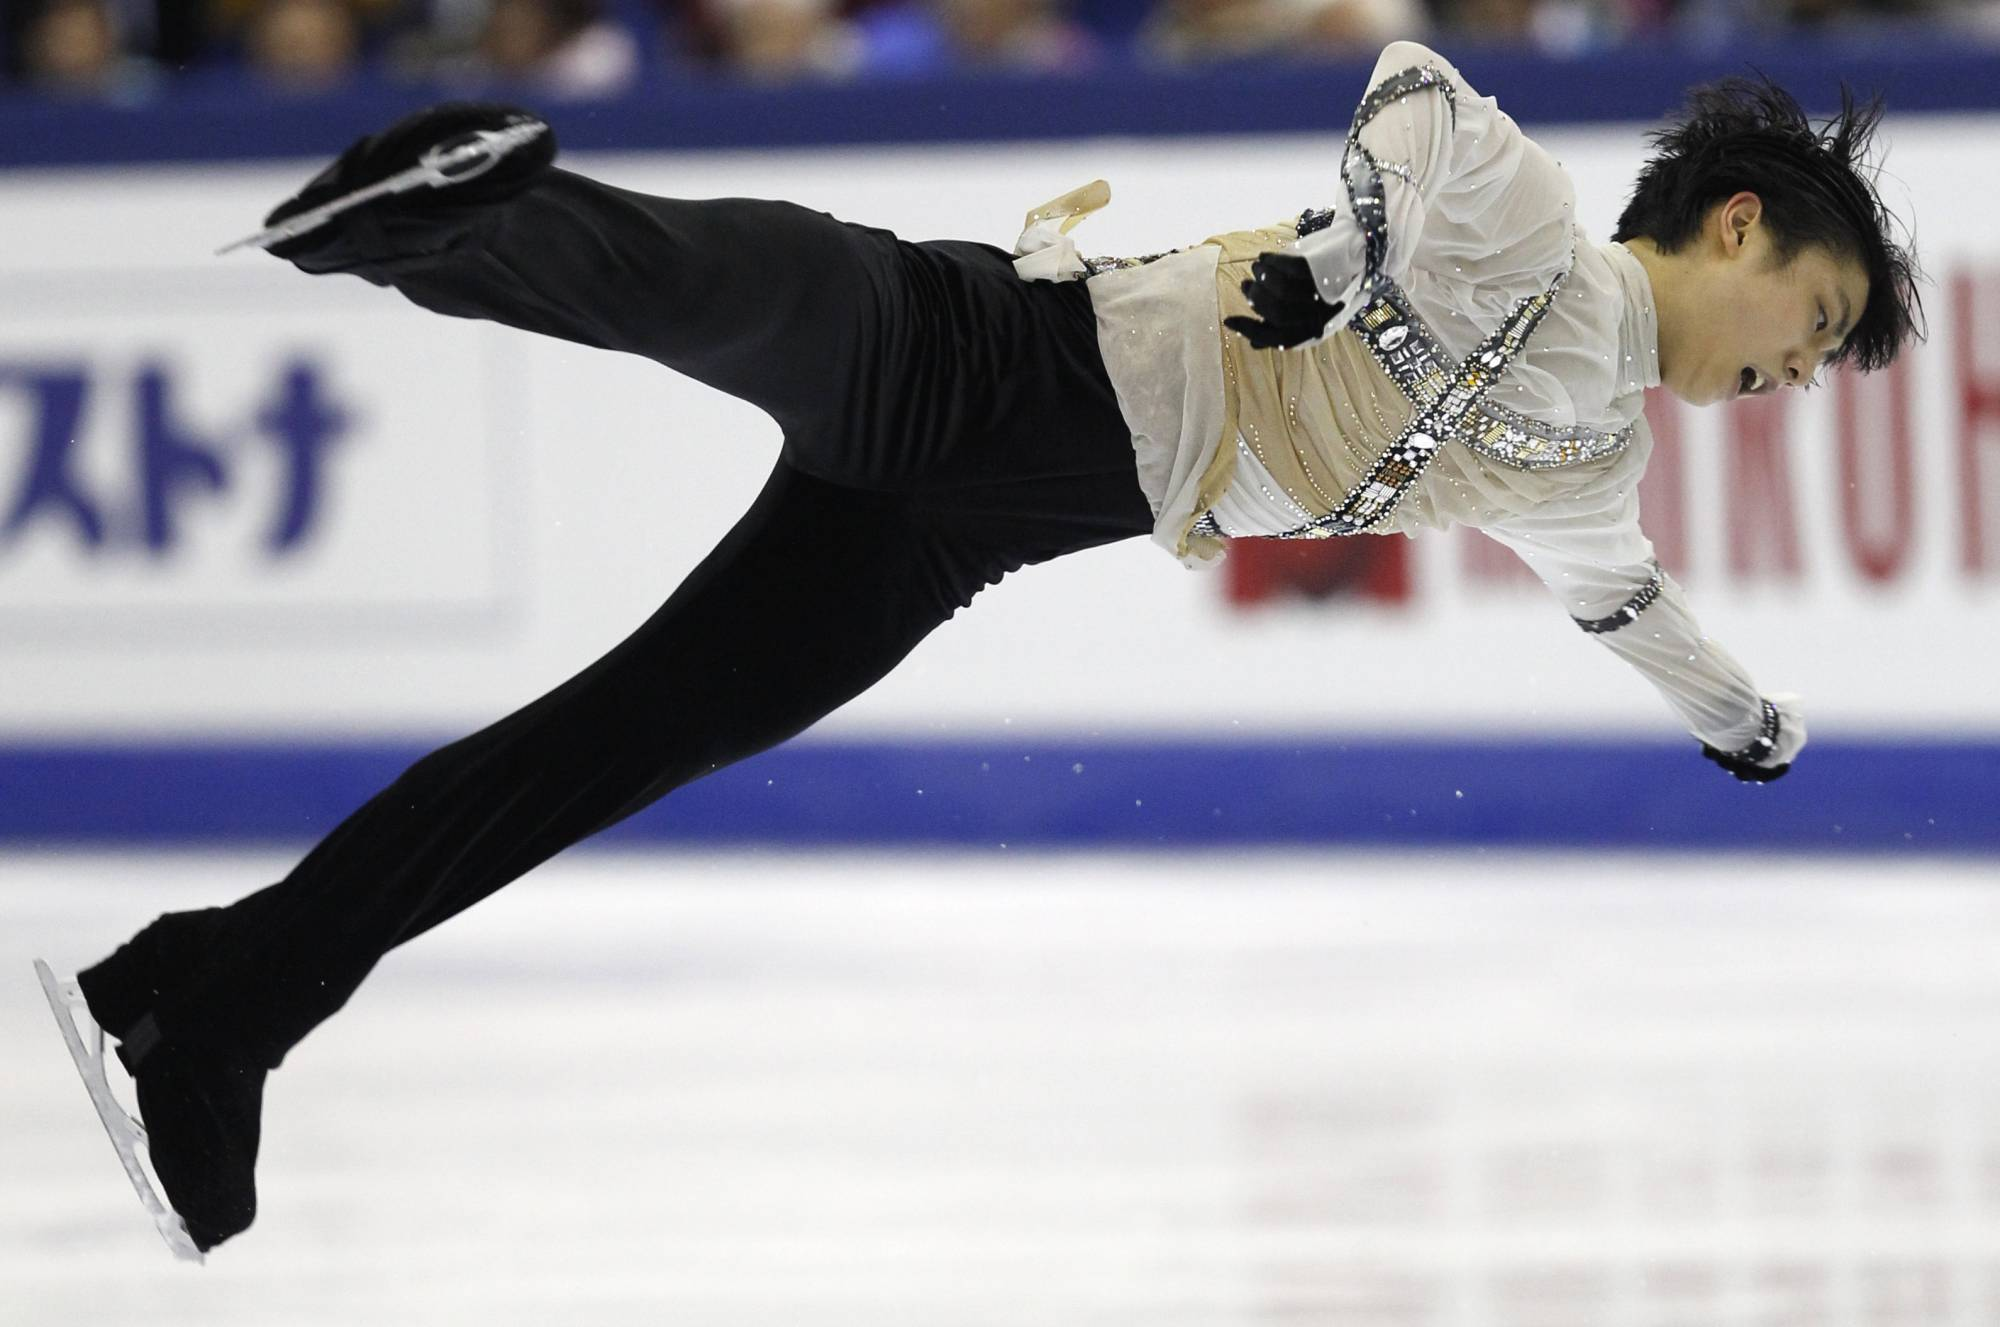 Yuzuru Hanyu performs during the men's free skate at the ISU World Figure Skating Championships in Nice, France, on March 31, 2012. | REUTERS